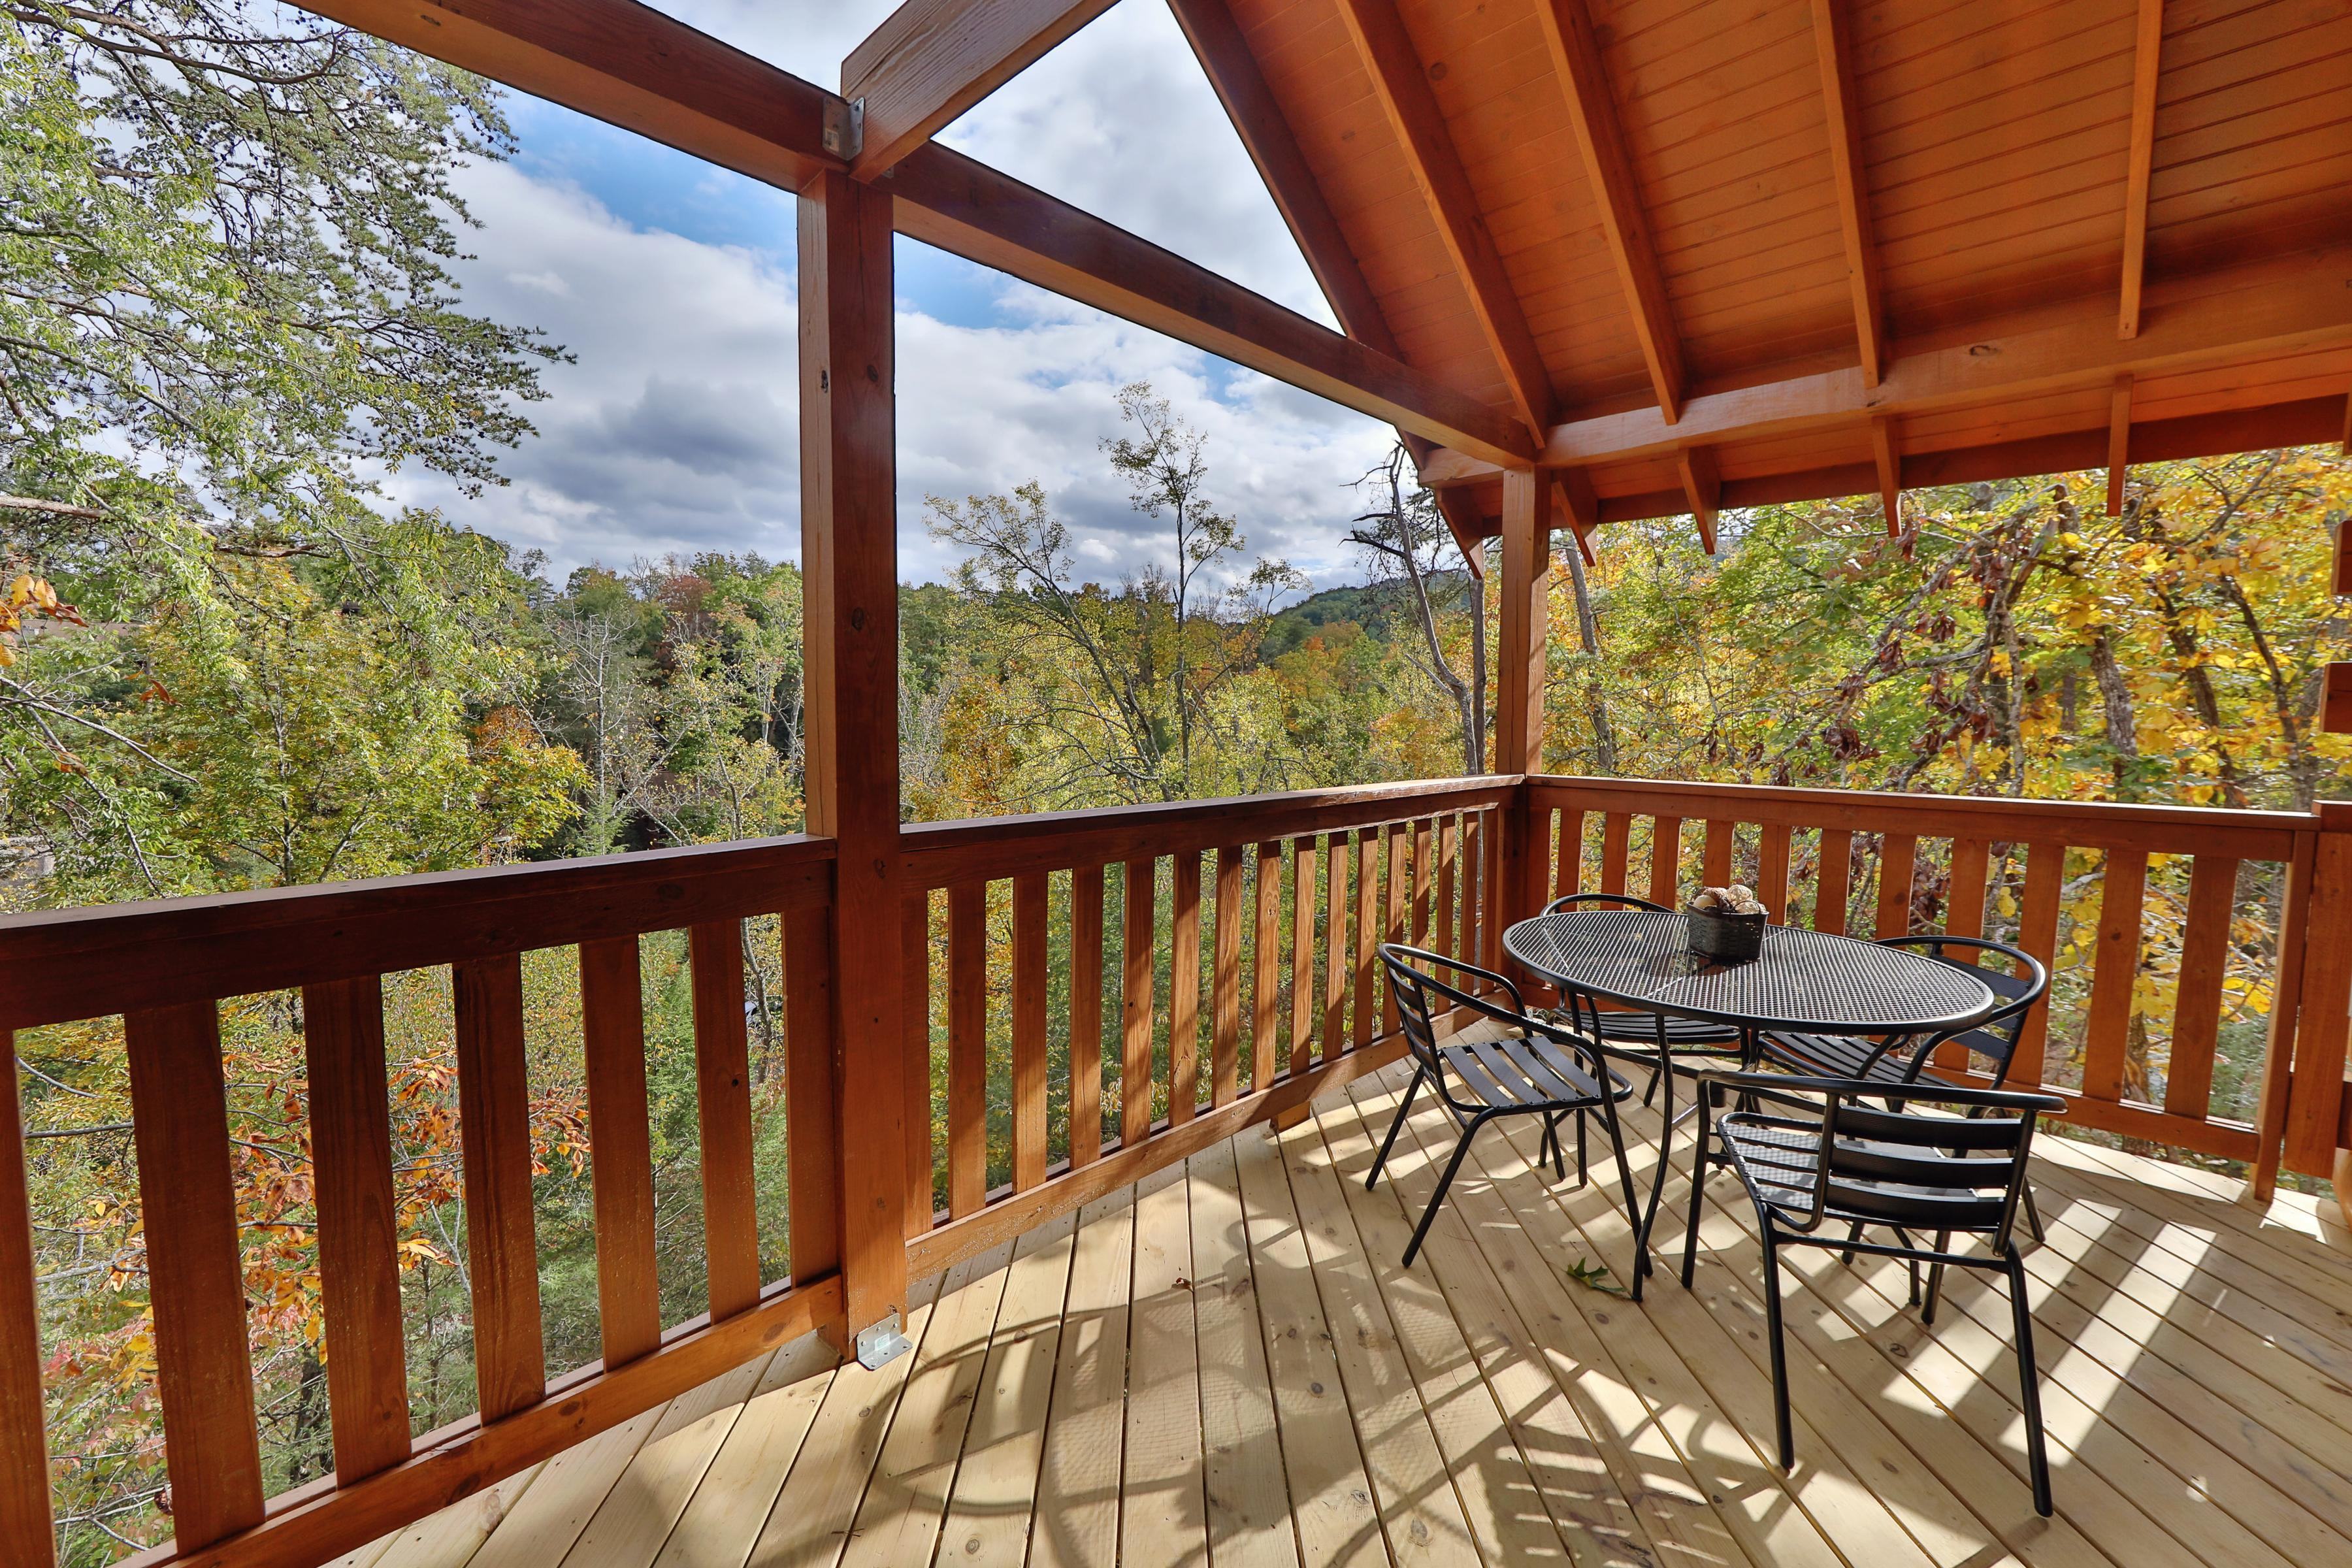 Seating for 4 and a gas grill await on an upper deck, set among the treetops.